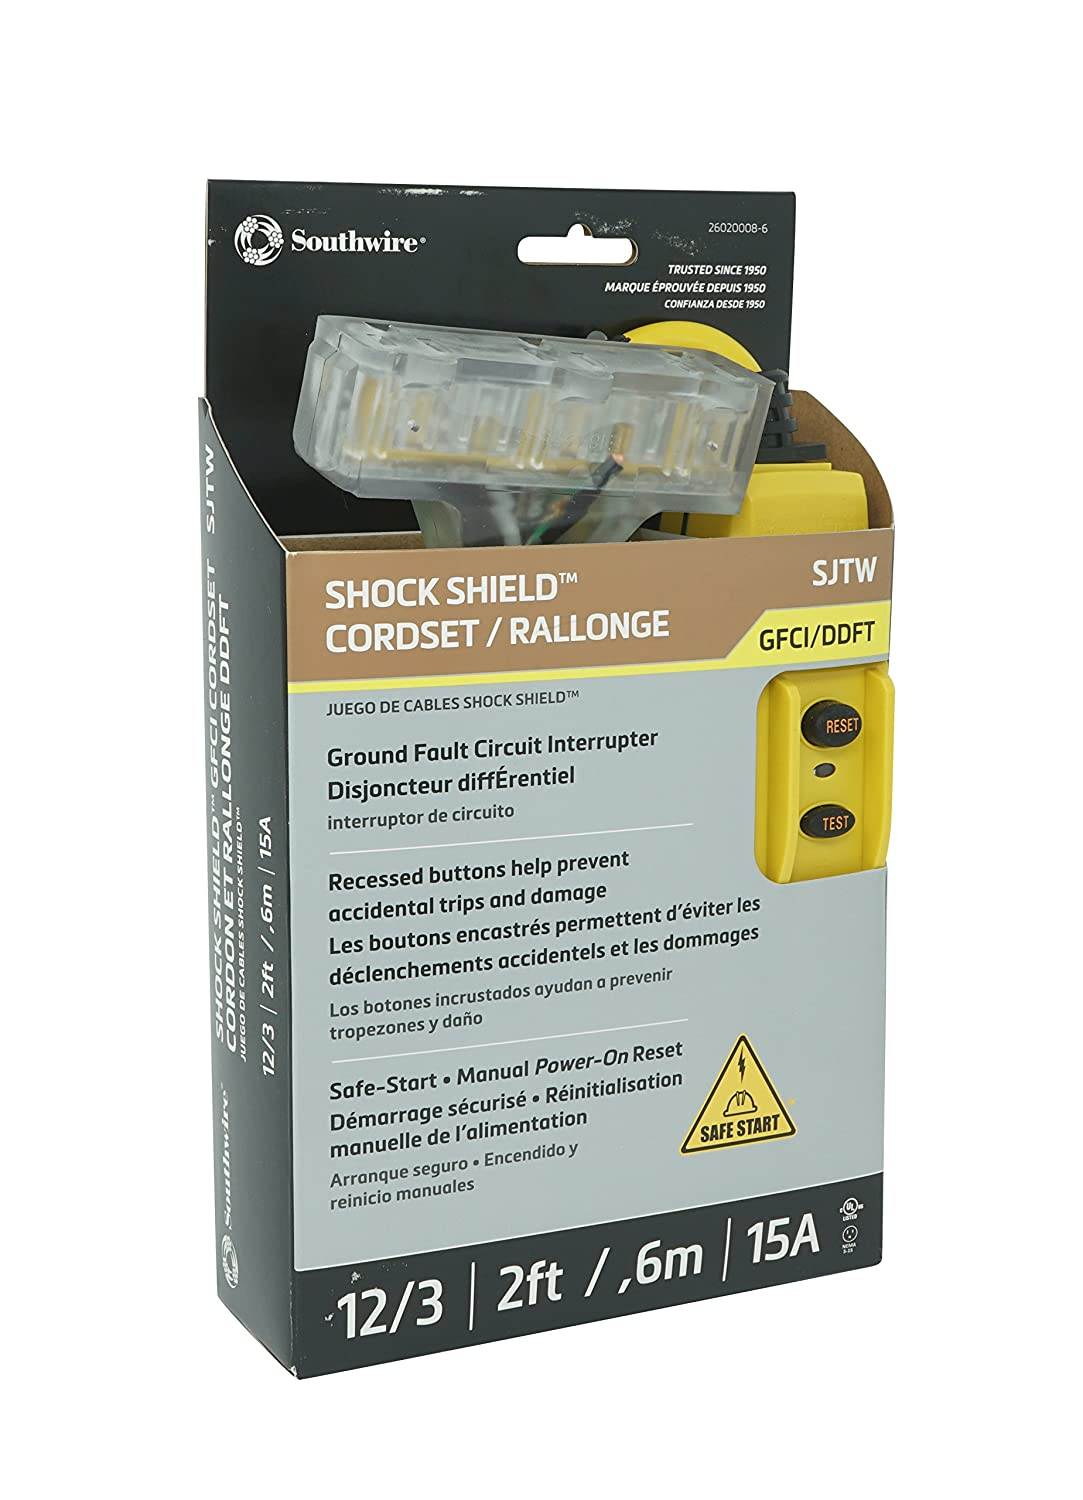 Trc 26020008 6 12 3 Gauge Shockshield Gfci Protected In Line Tri Circuit Breaker Wiring Schematic Cord Set With Outlets 2 Feet 15 Amp Yellow Tools Home Improvement Amazon Canada